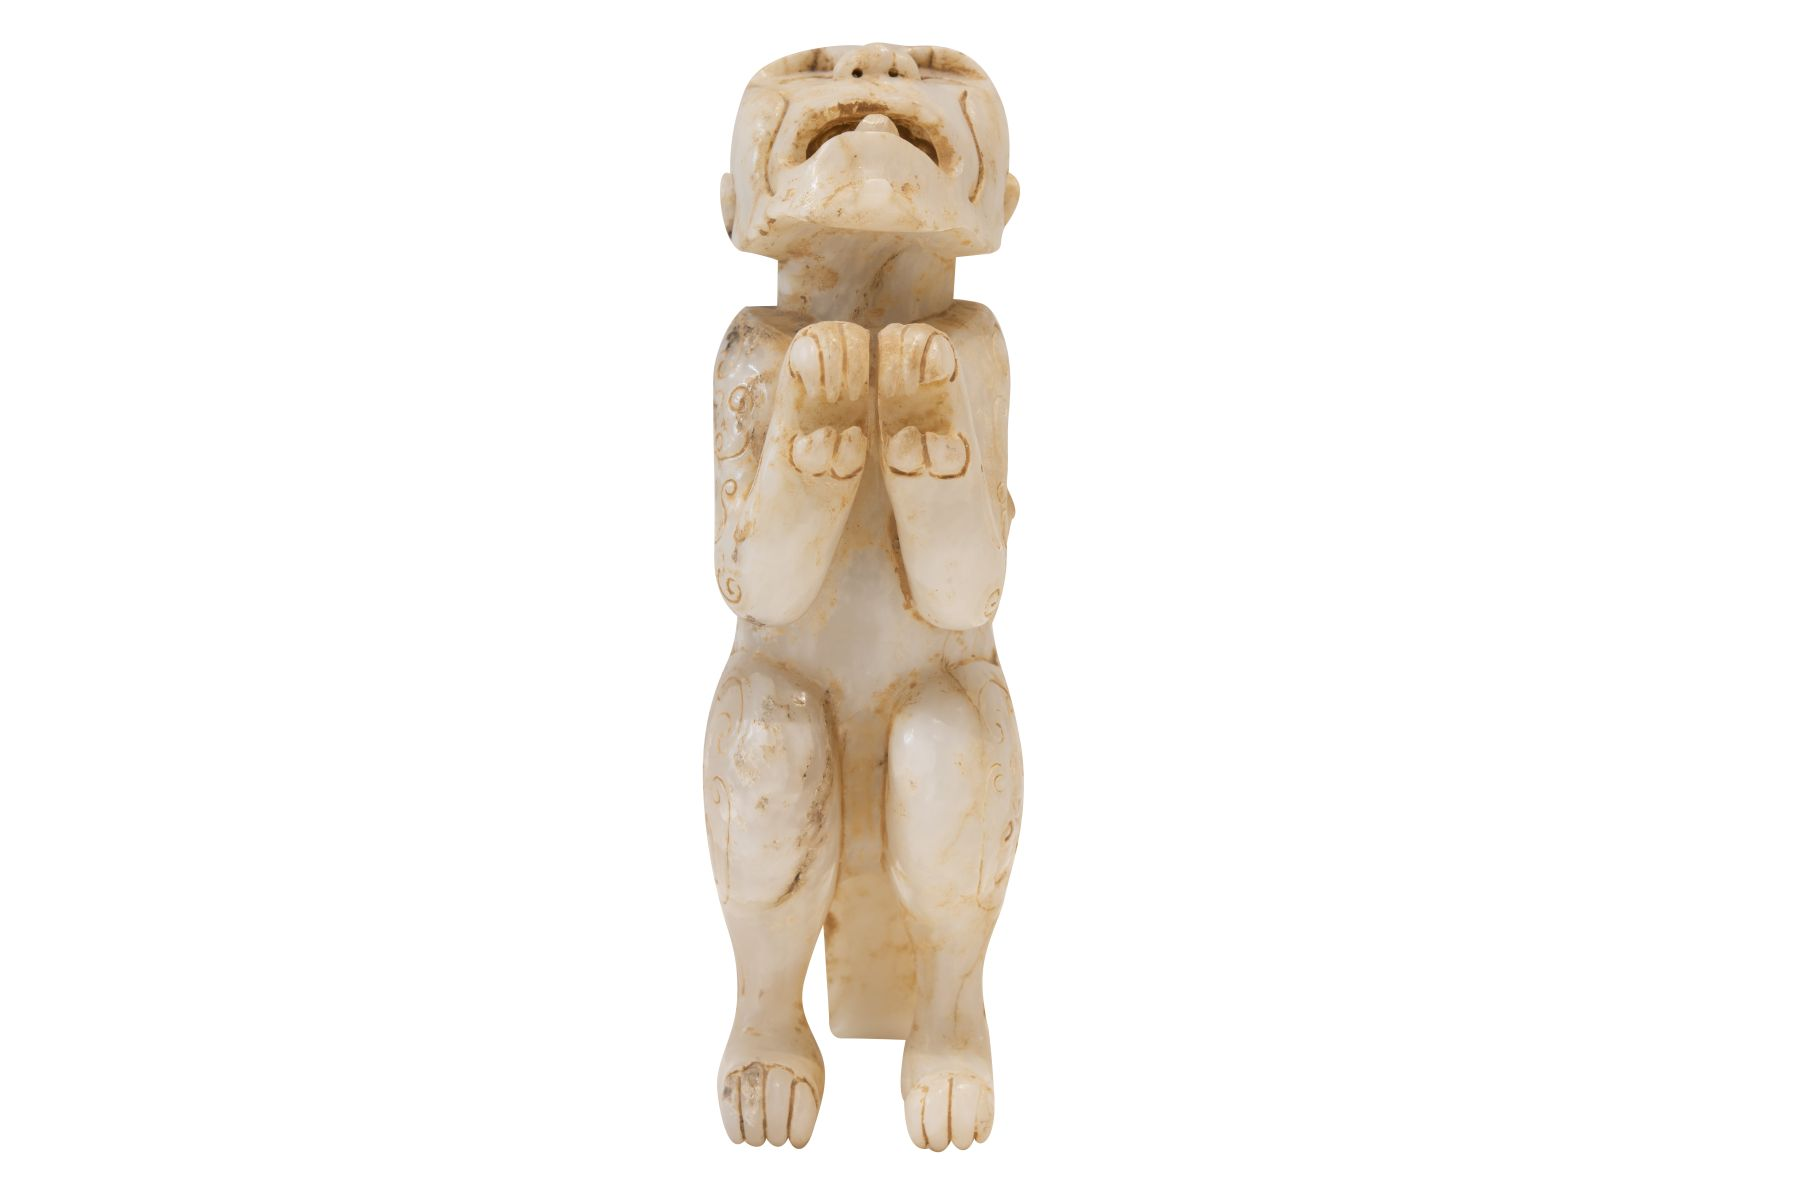 #72 Mythical Creature Made of Jade, 20th C. | Fabelwesen aus Jade, 20 Jh. Image